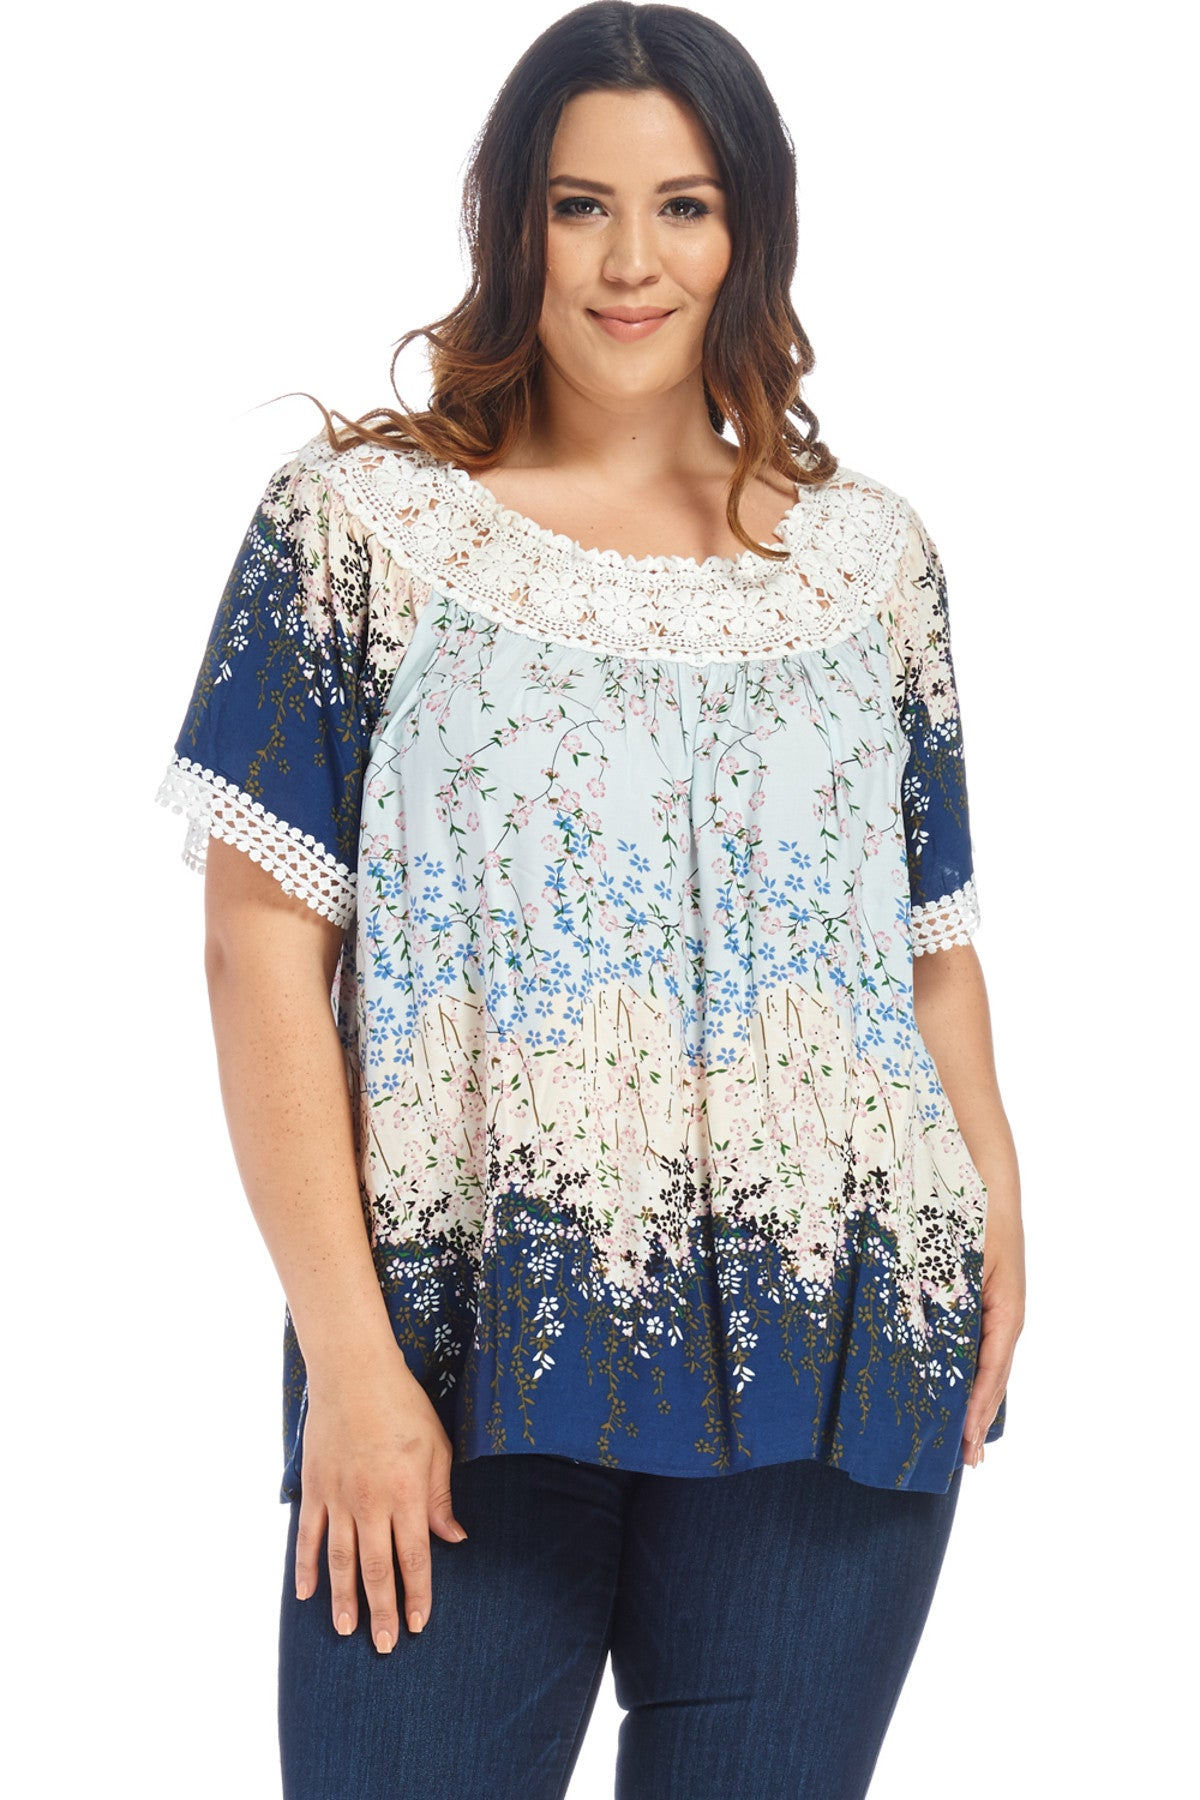 Plus Size Floral Shirt Tops